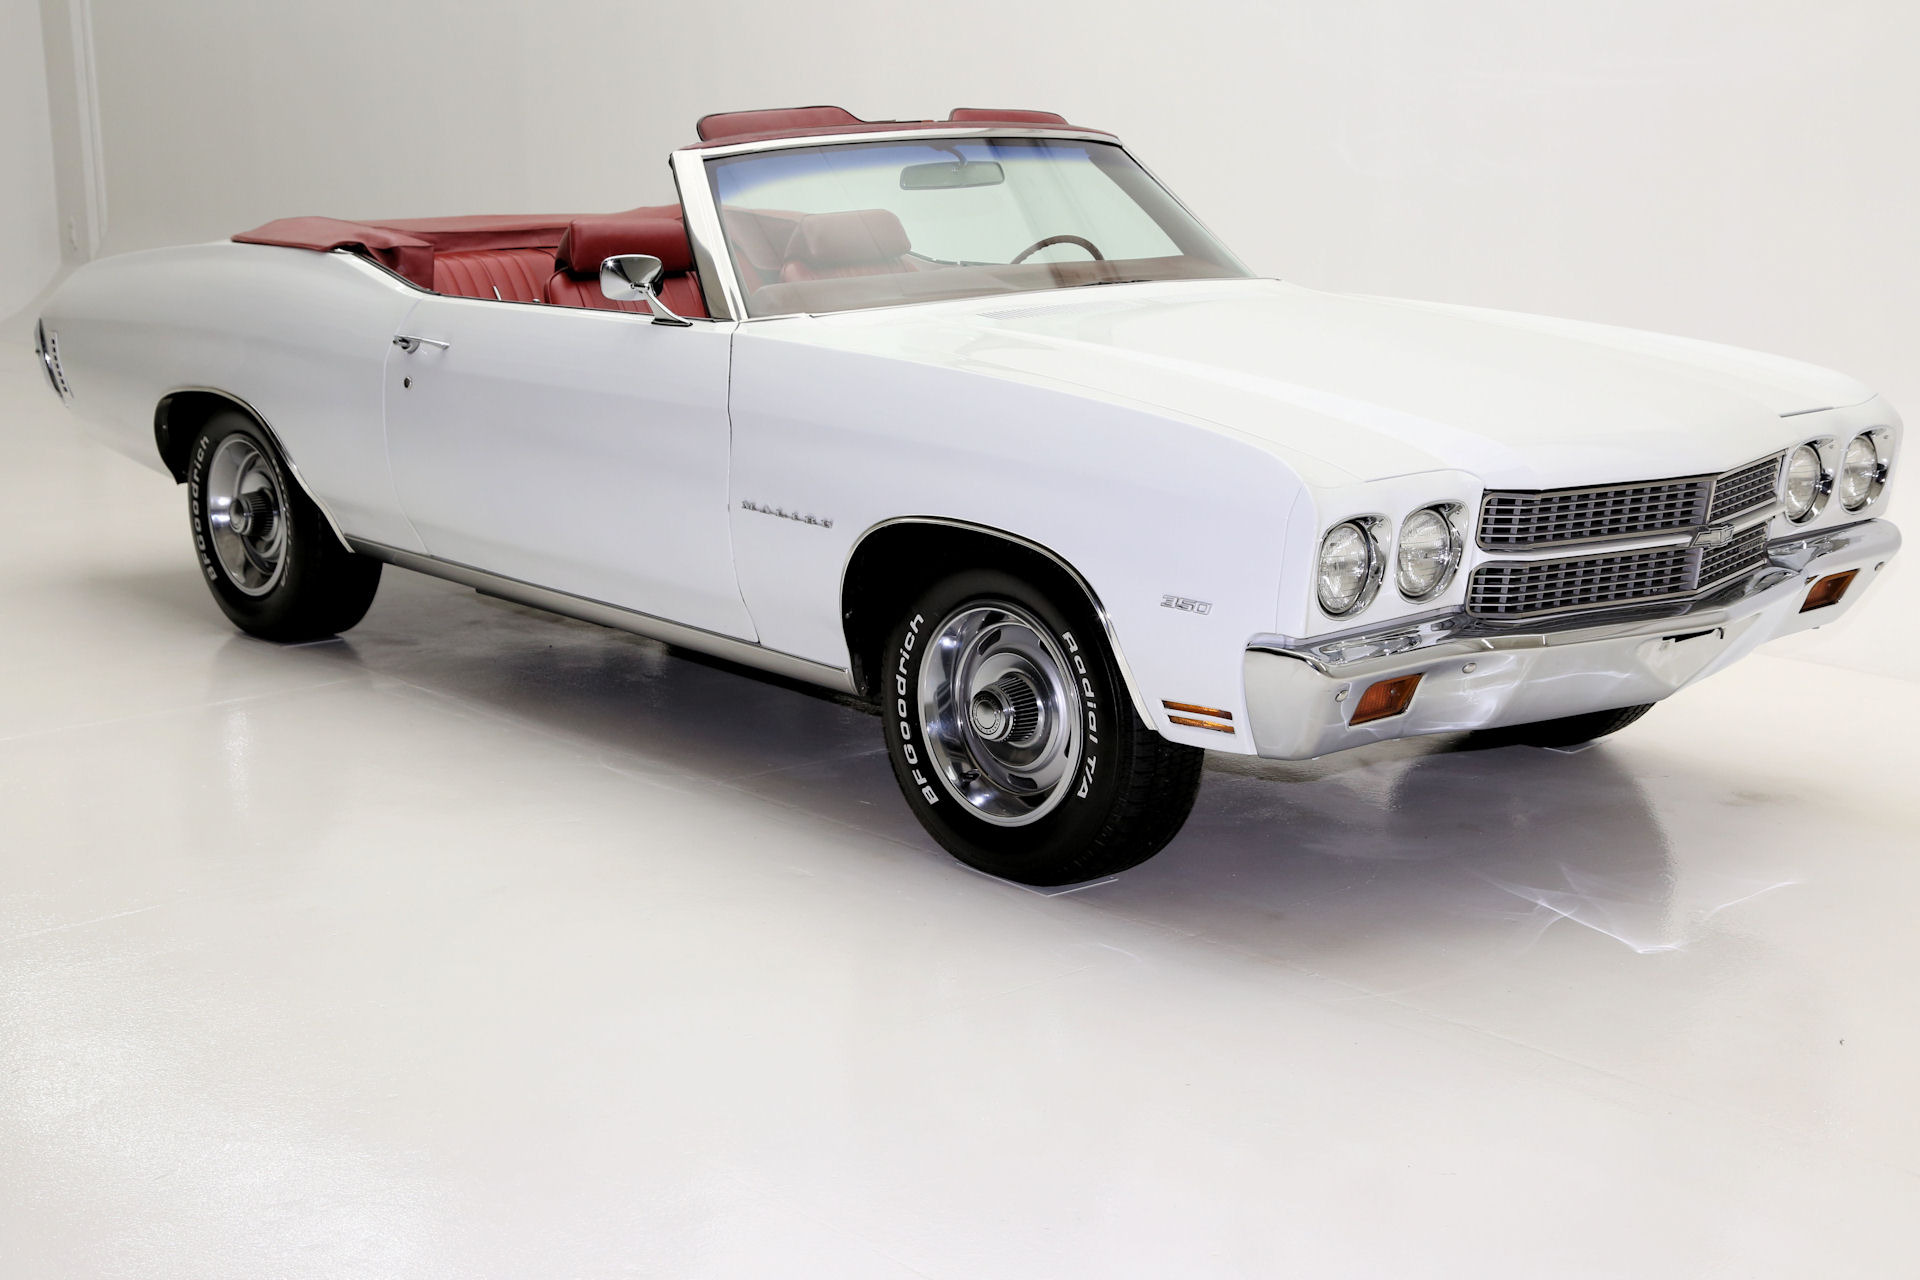 For Sale Used 1970 Chevrolet Chevelle Convertible 350, PS PB | American Dream Machines Des Moines IA 50309